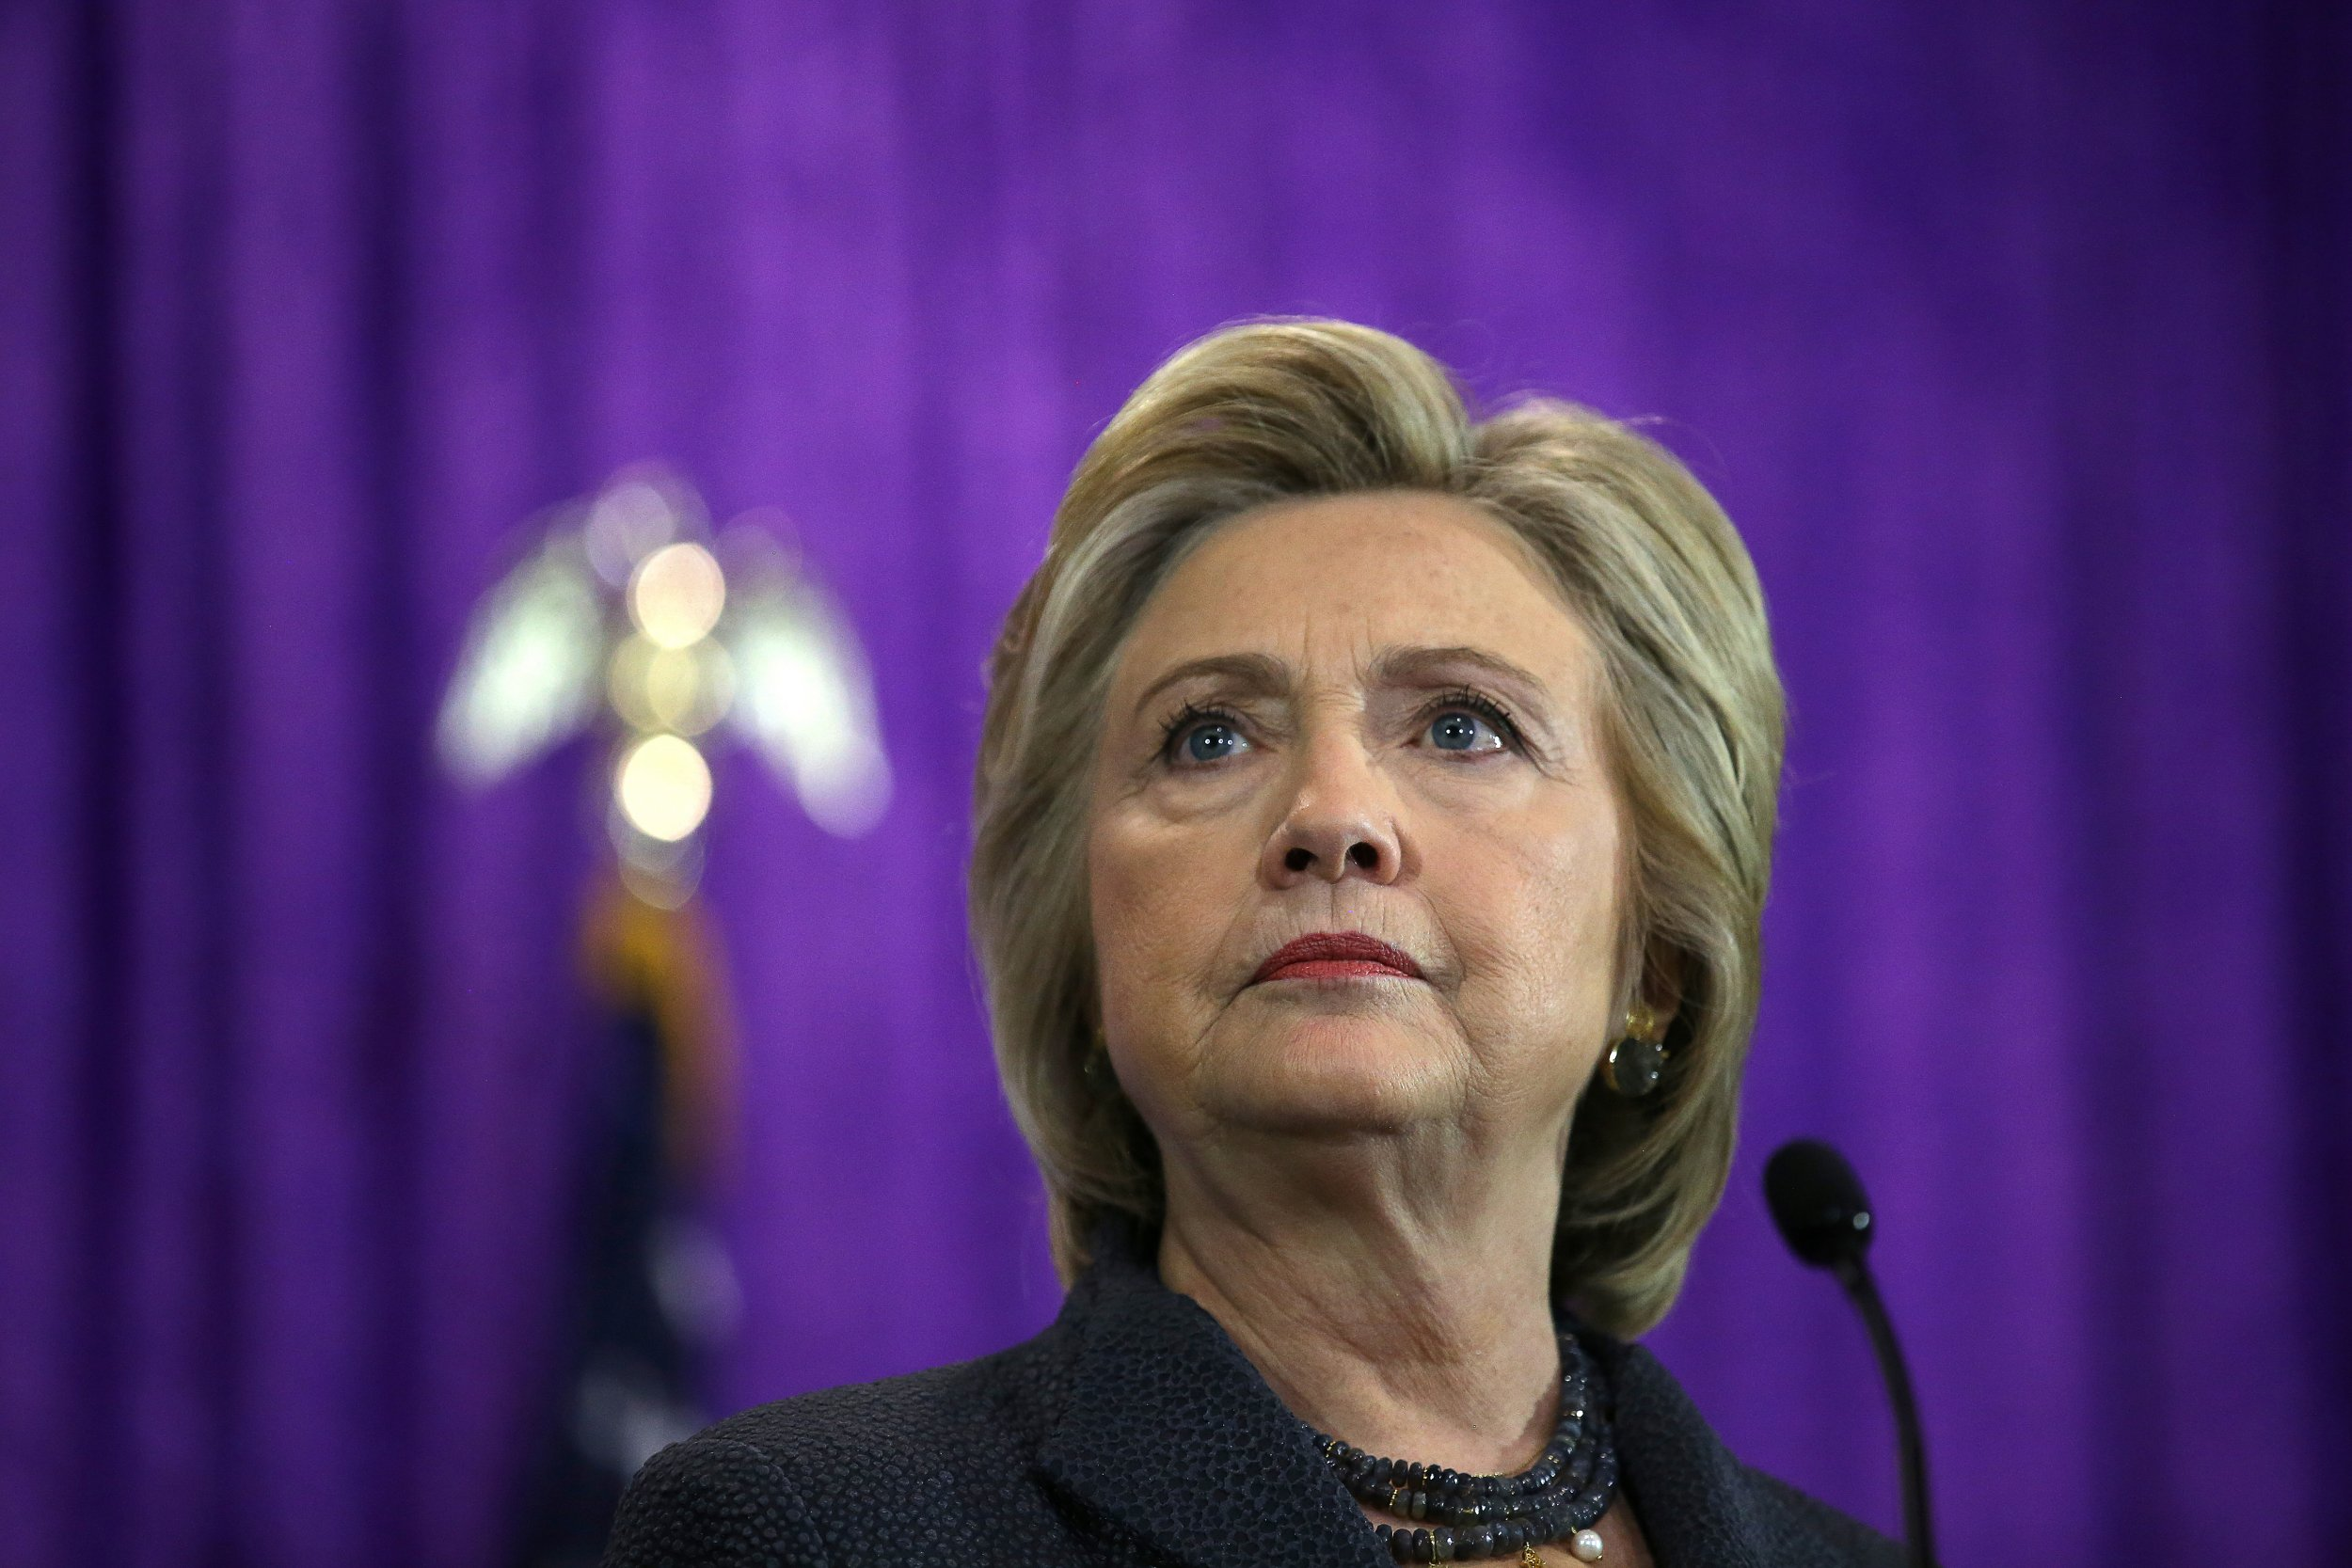 Hillary Clinton's Leaked Speech Excerpts Show She's Embraced Wall Street's Dark Side